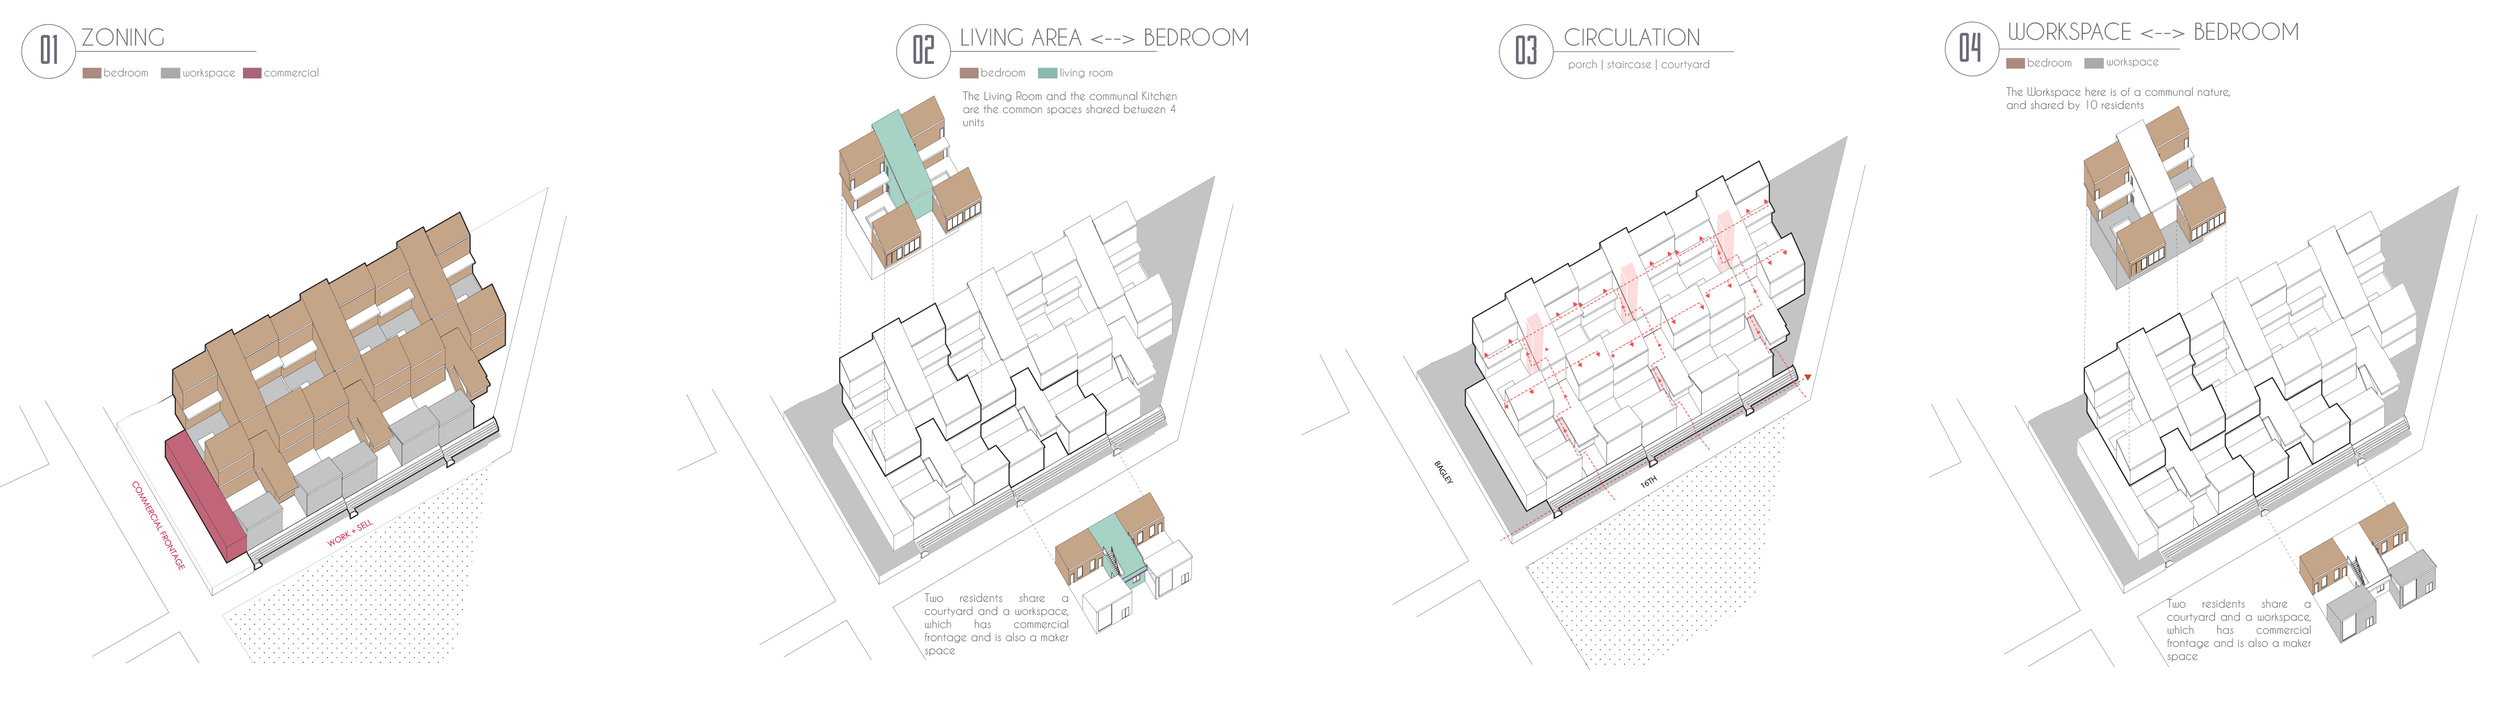 Conceptual massing diagrams showing area and unit divisions and communal spaces.